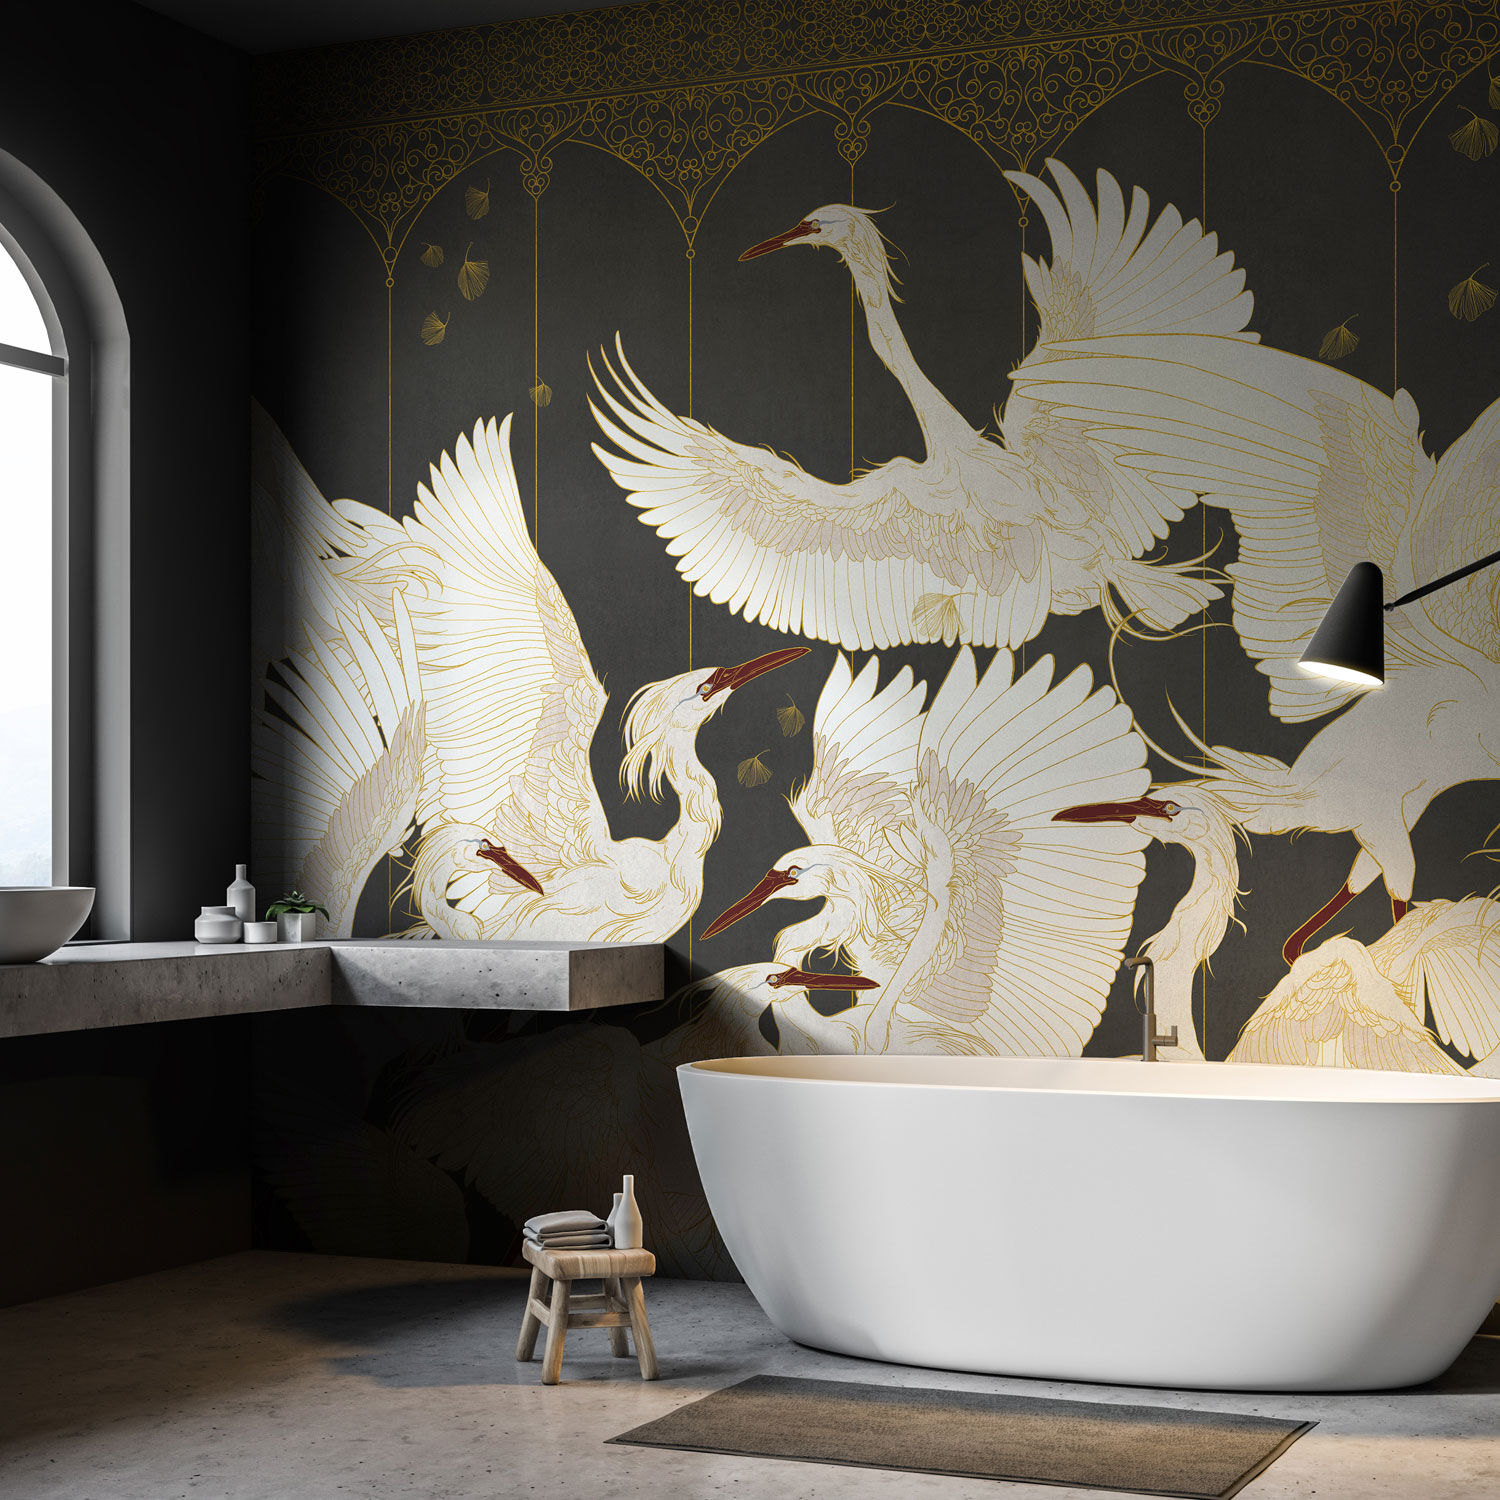 Wallpaper and Decorative Panels Made in Italy | Tecnografica